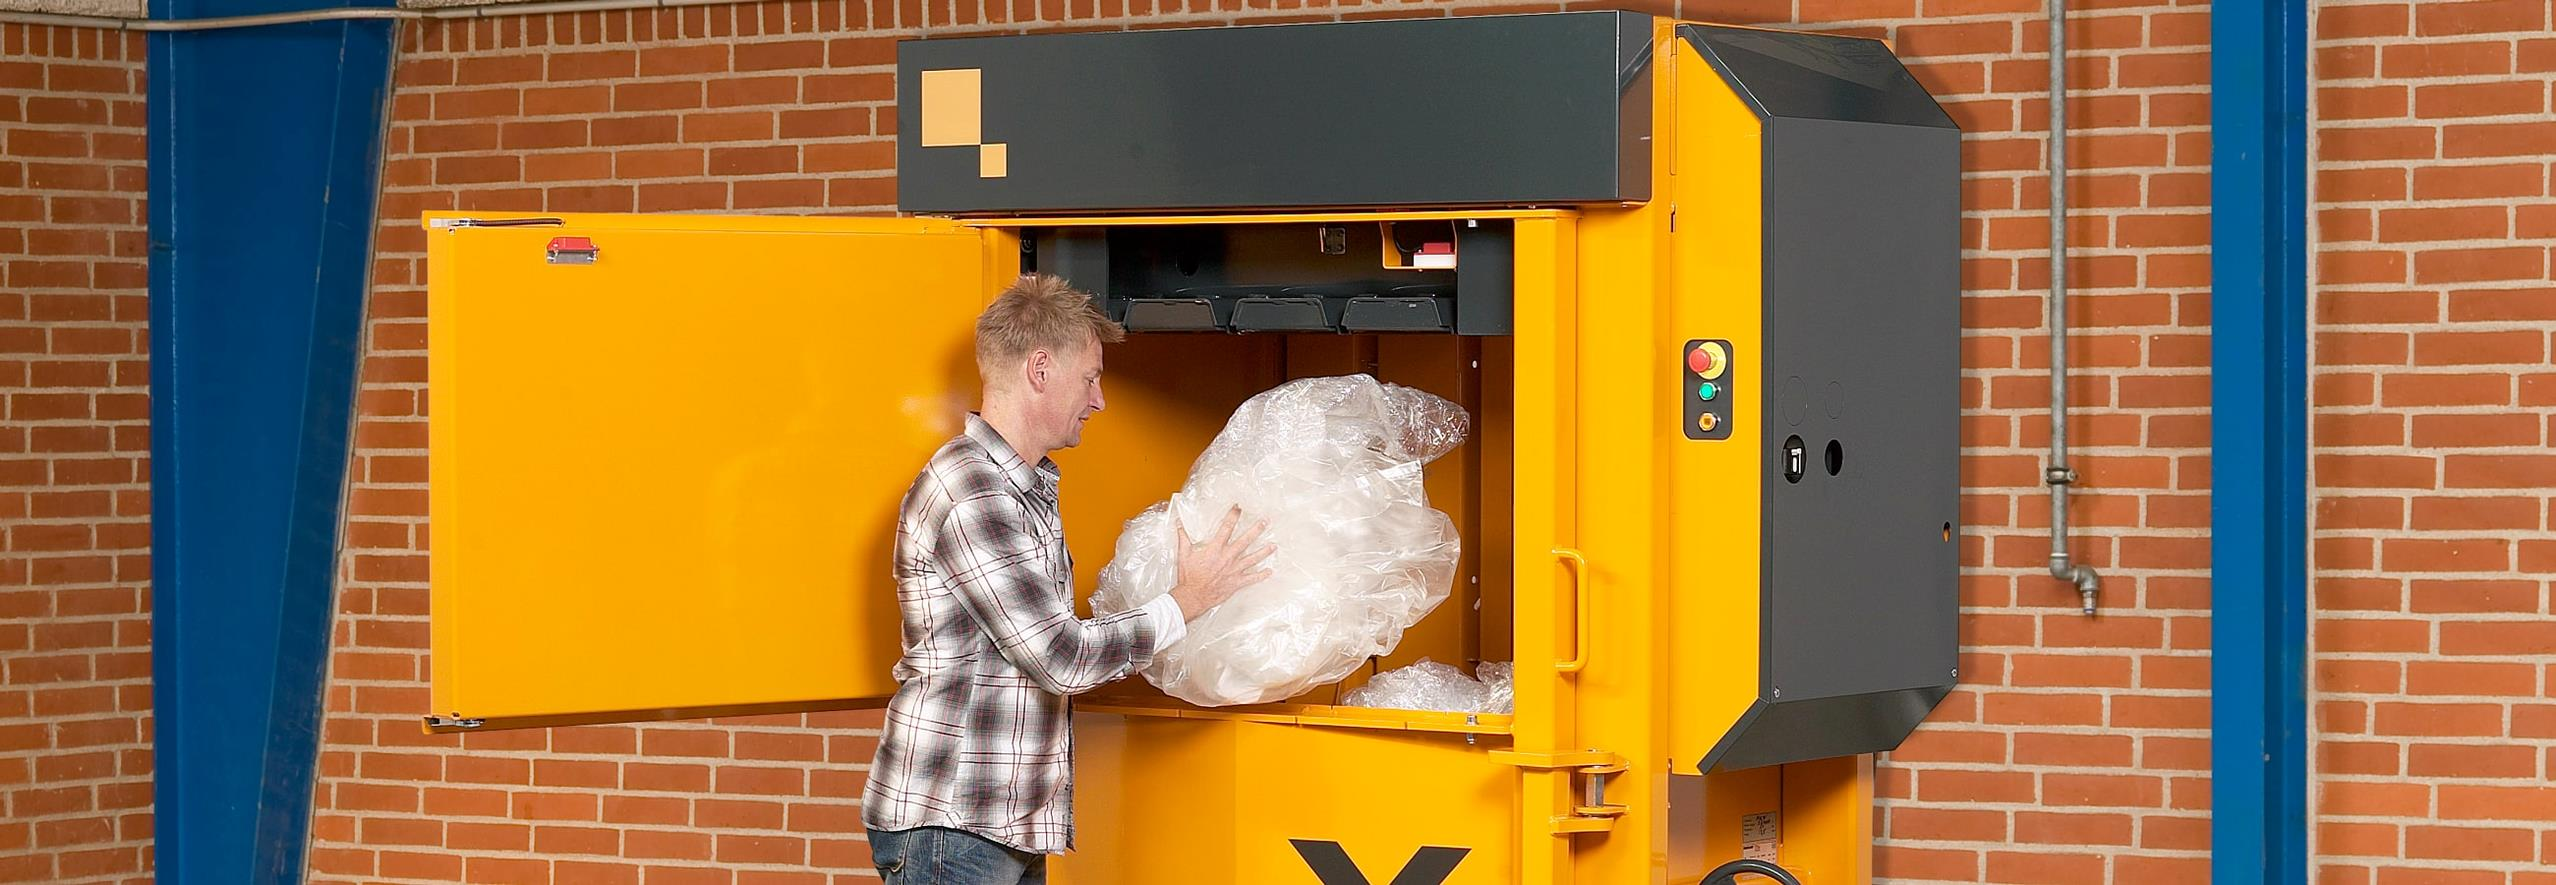 Man fills plastic waste into yellow baler